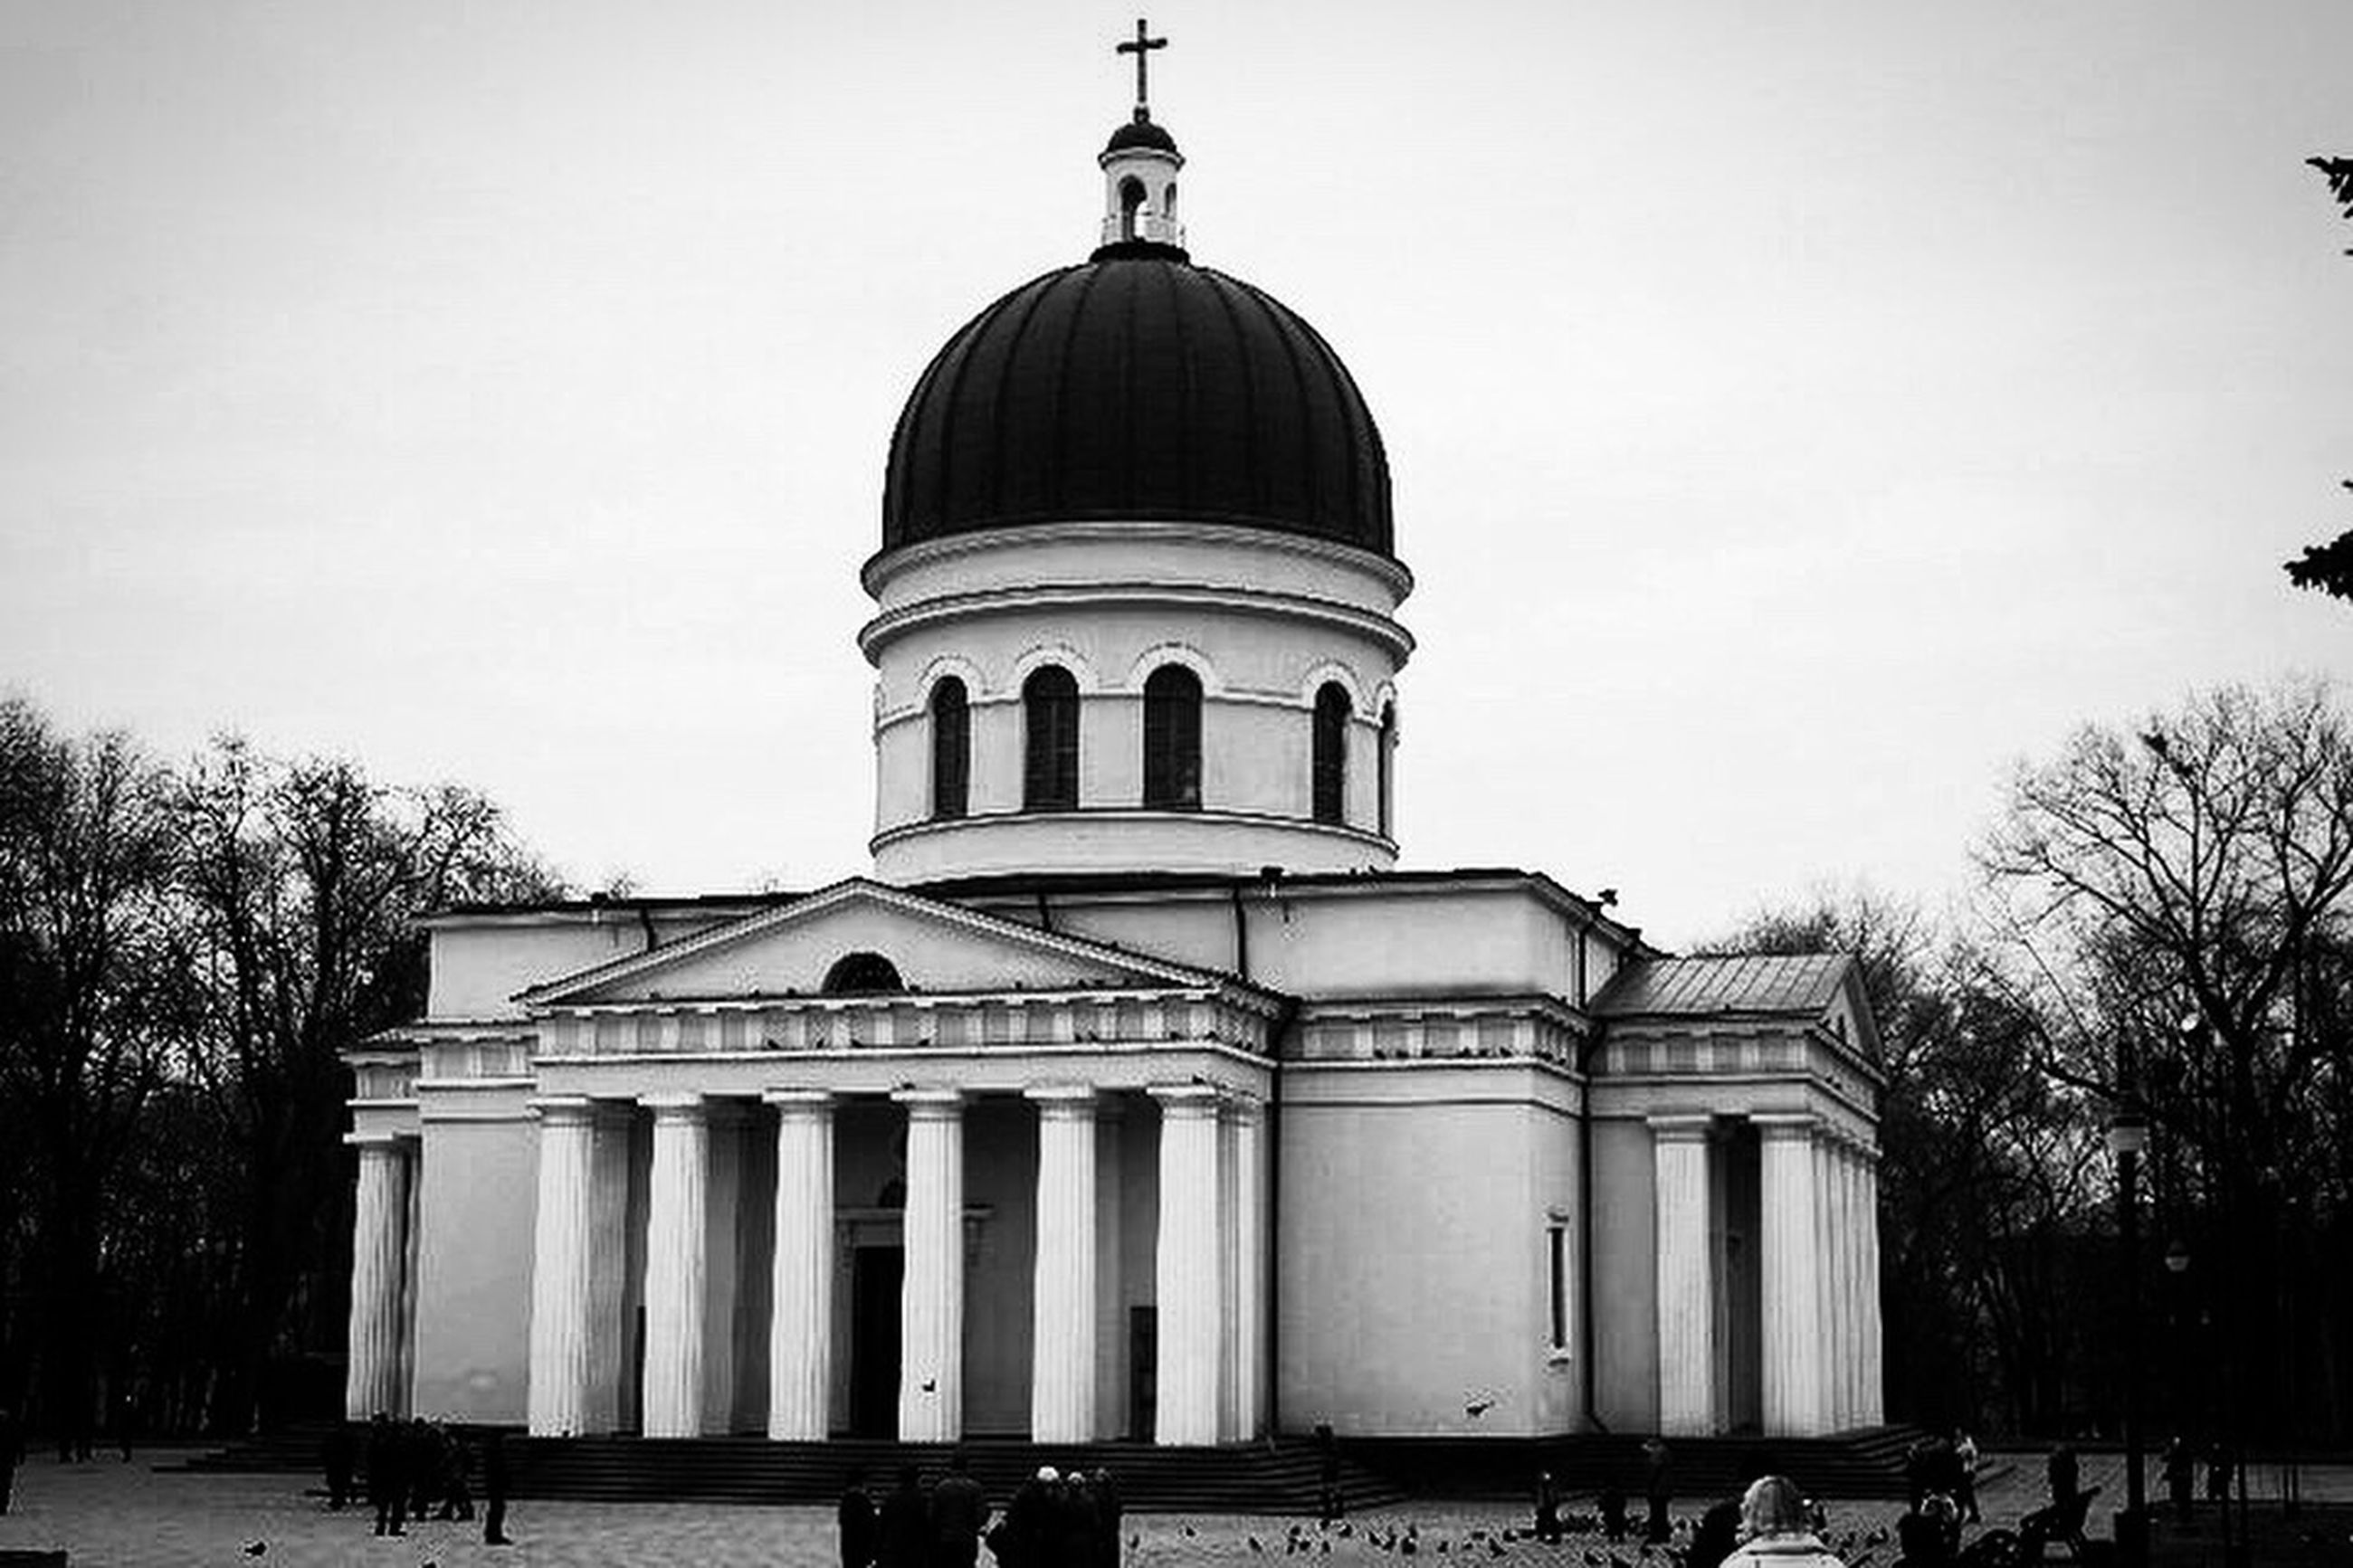 architecture, building exterior, built structure, clear sky, dome, place of worship, religion, facade, church, spirituality, low angle view, travel destinations, famous place, history, arch, tourism, tree, sky